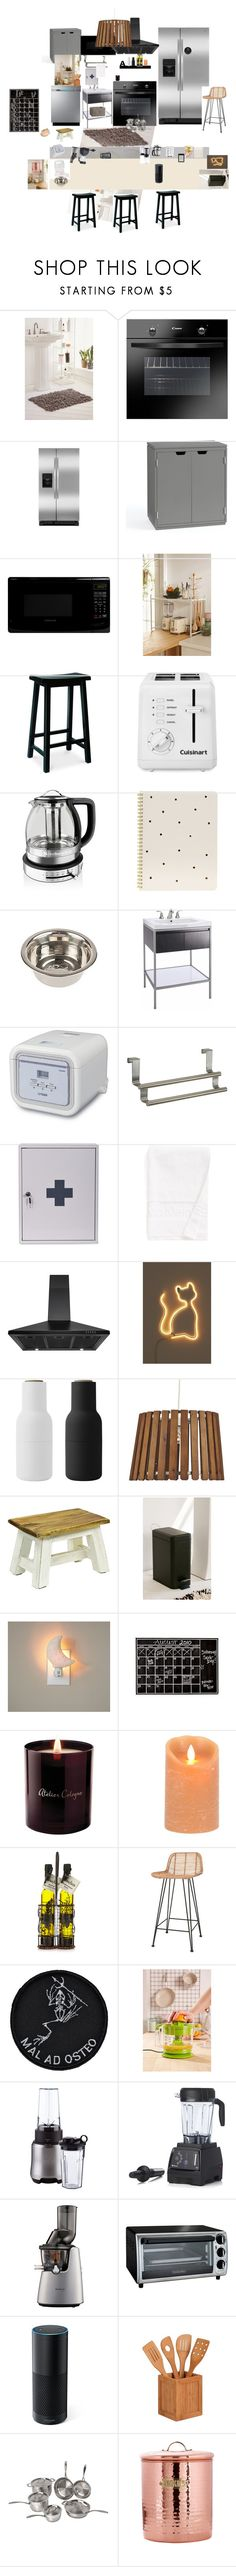 """Untitled #88"" by xteenxidlex ❤ liked on Polyvore featuring Urban Outfitters, Candy, Pottery Barn, Farberware, Cuisinart, KitchenAid, Sugar Paper, Improvements, Garden Trading and Calvin Klein"